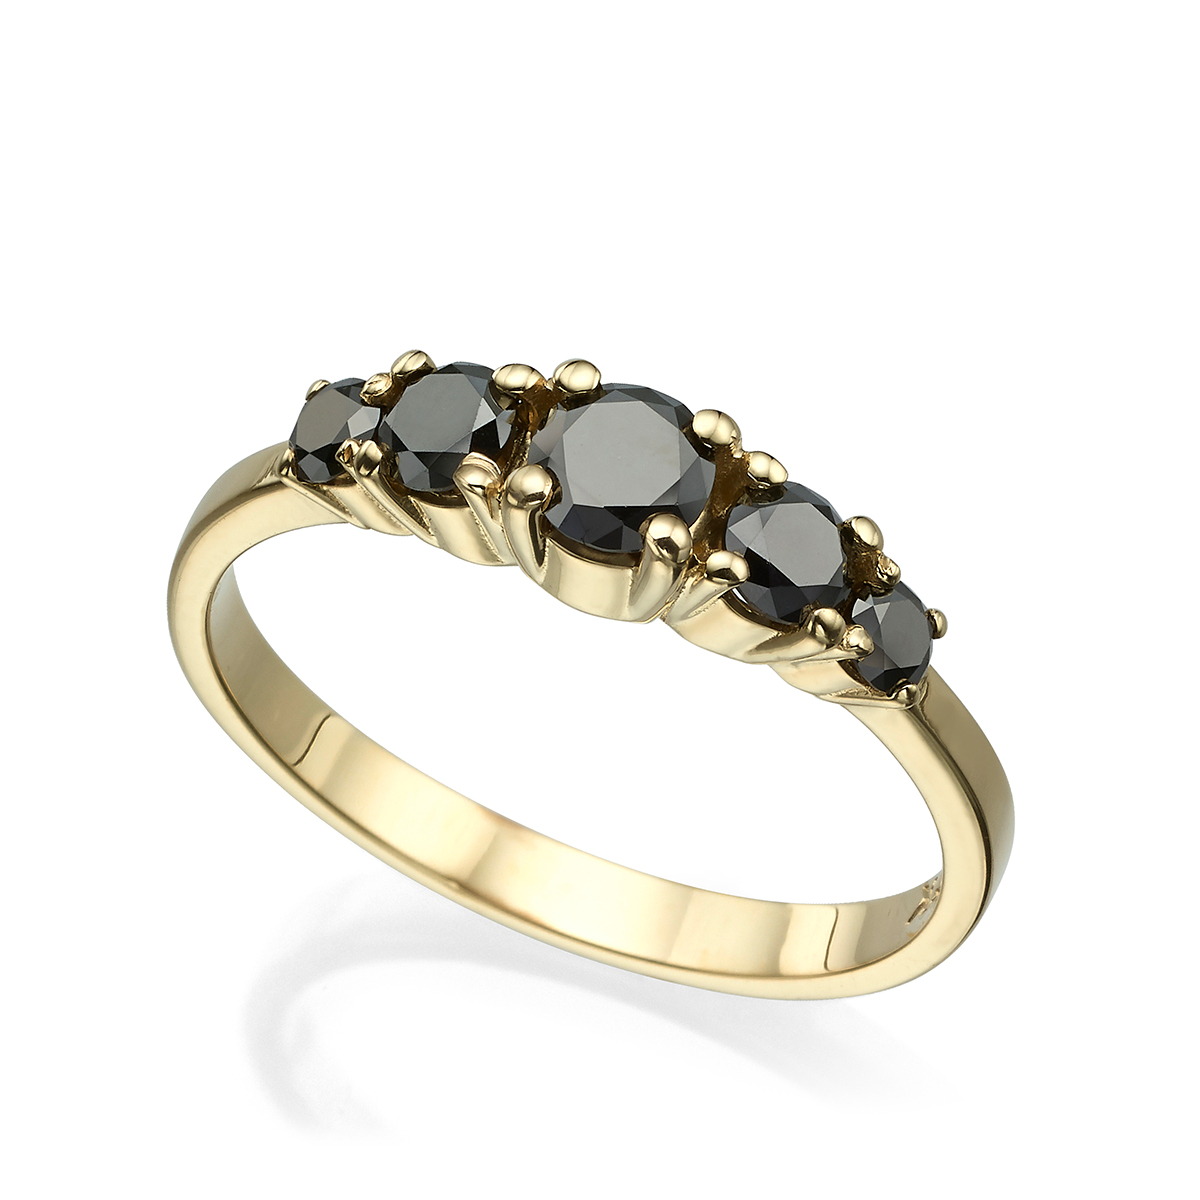 5 Black Diamonds Solid Gold Ring In A Prong Setting – 0.90ct